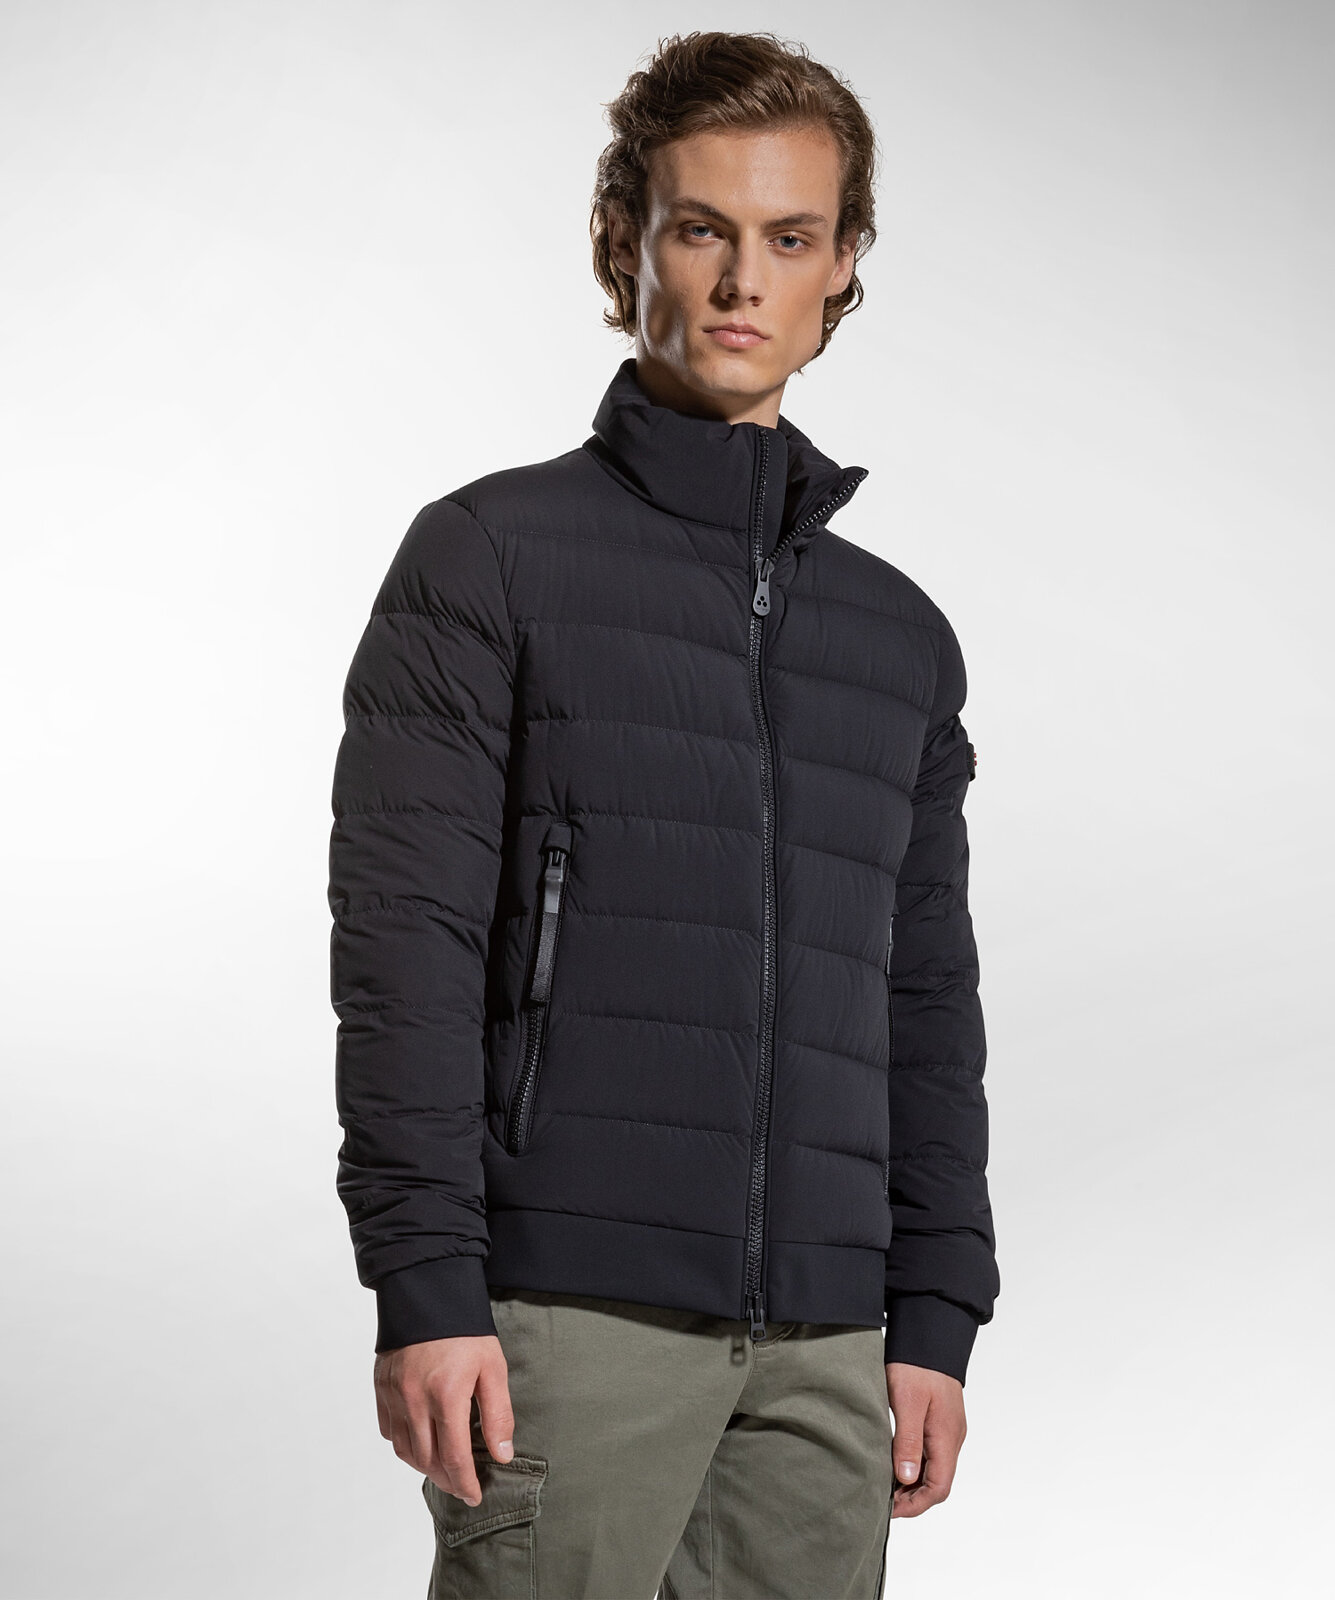 Down Jacket In Nylon and Jersey - Peuterey